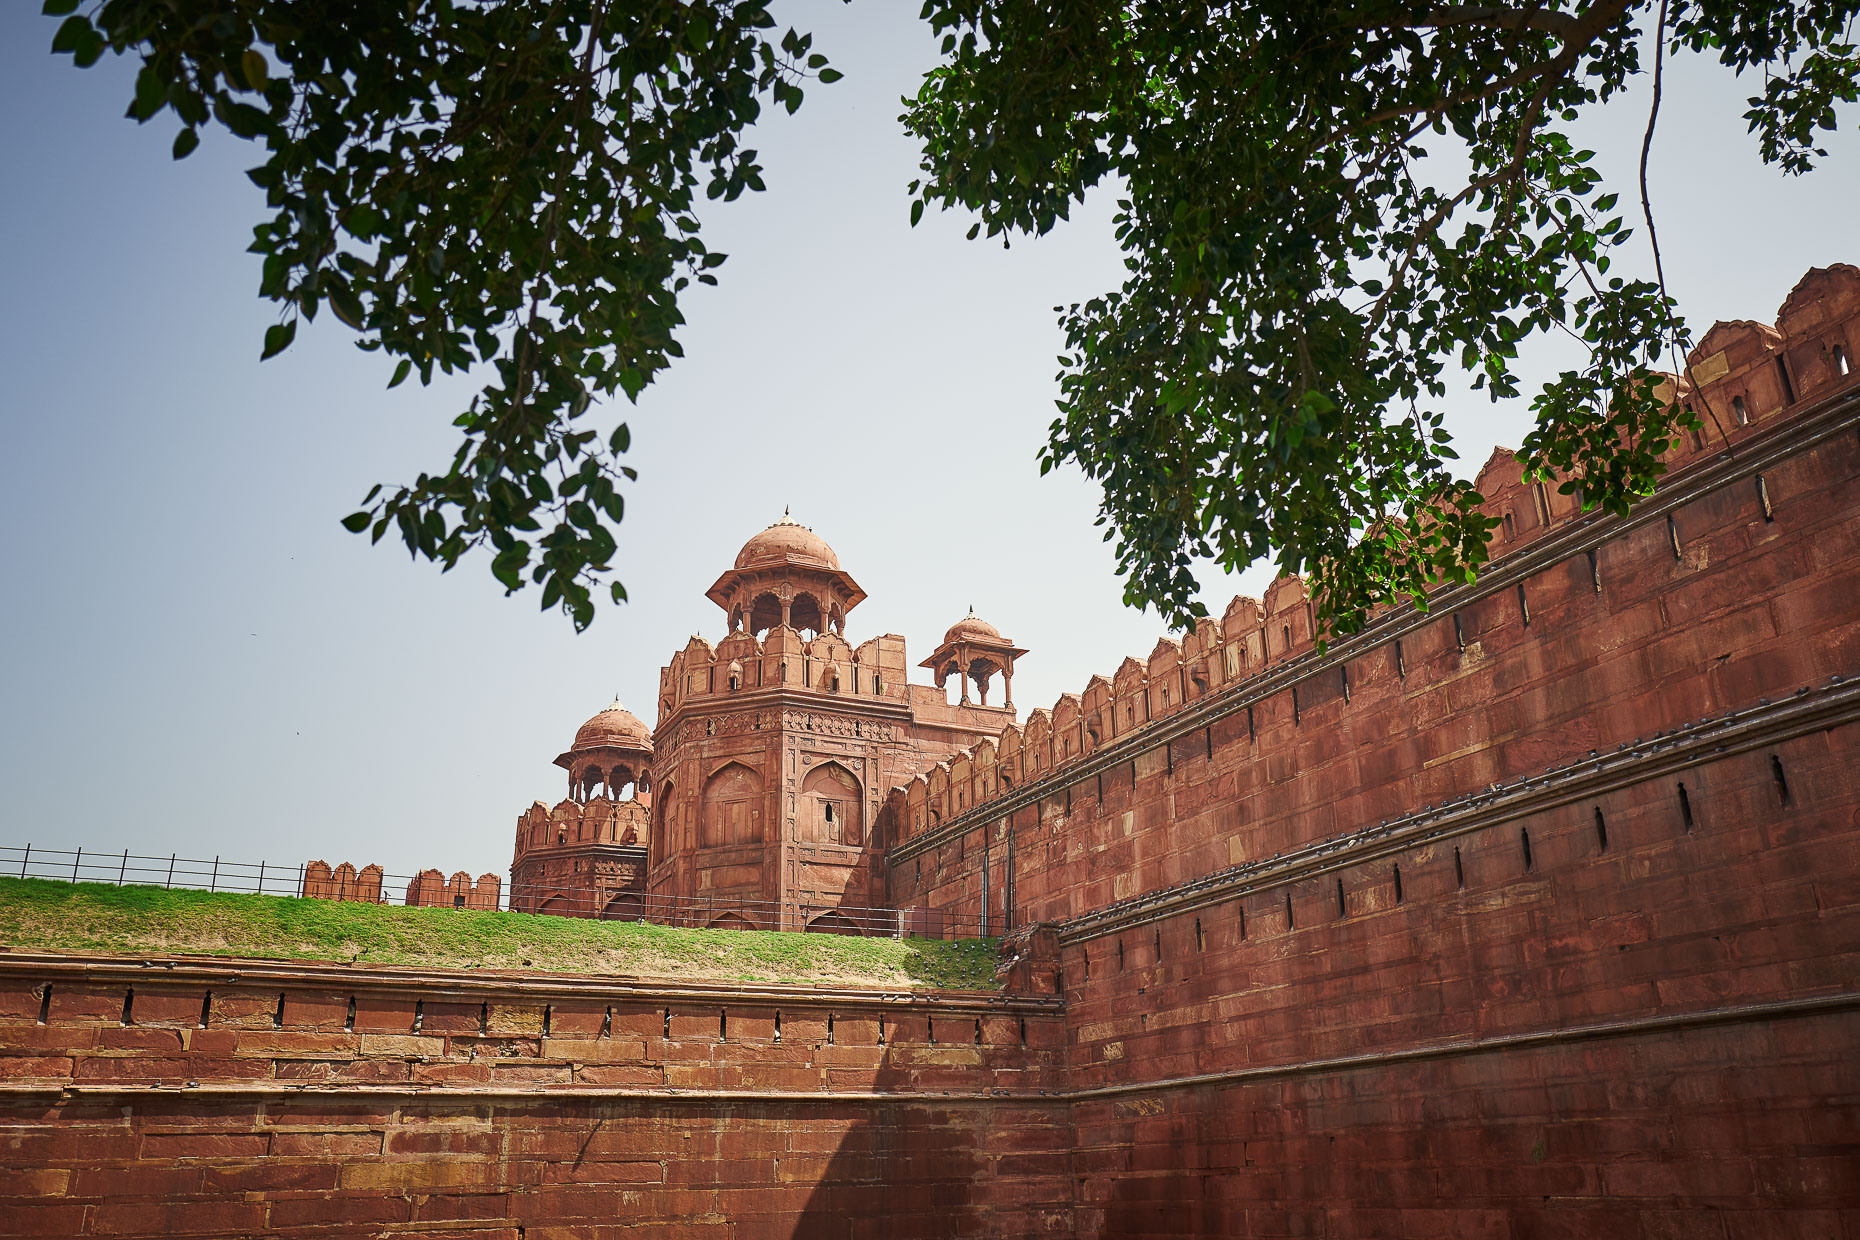 Personal_India_agra_L1030726-14